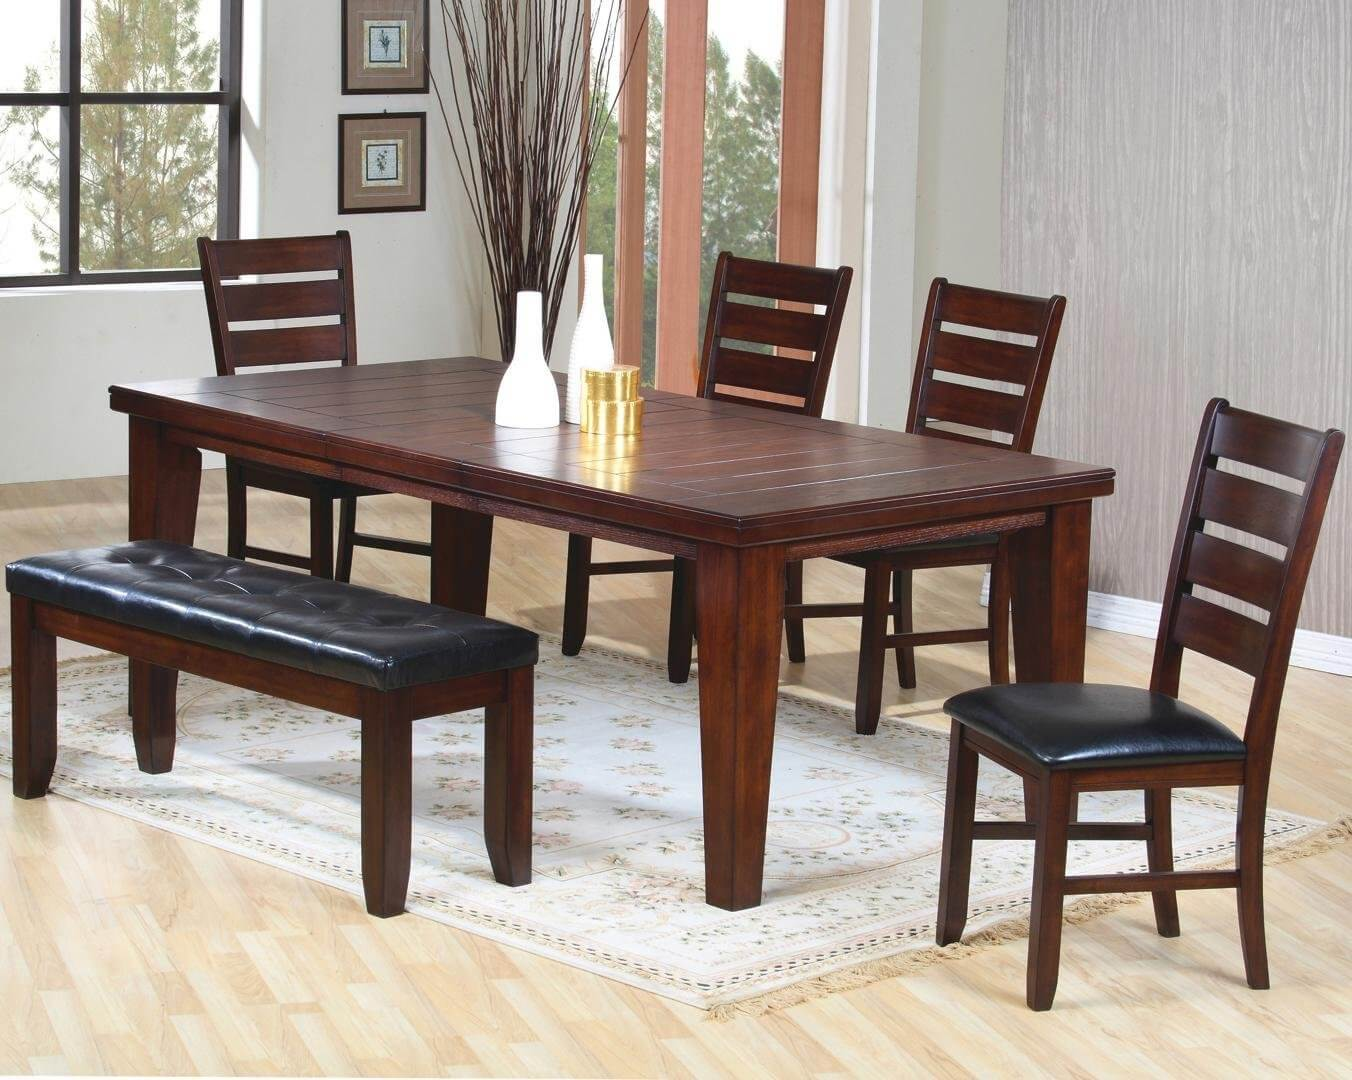 Exceptionnel Solid Wood Six Piece Dining Set With Cushioned Bench. The Finish Is Dark  Oak Wood